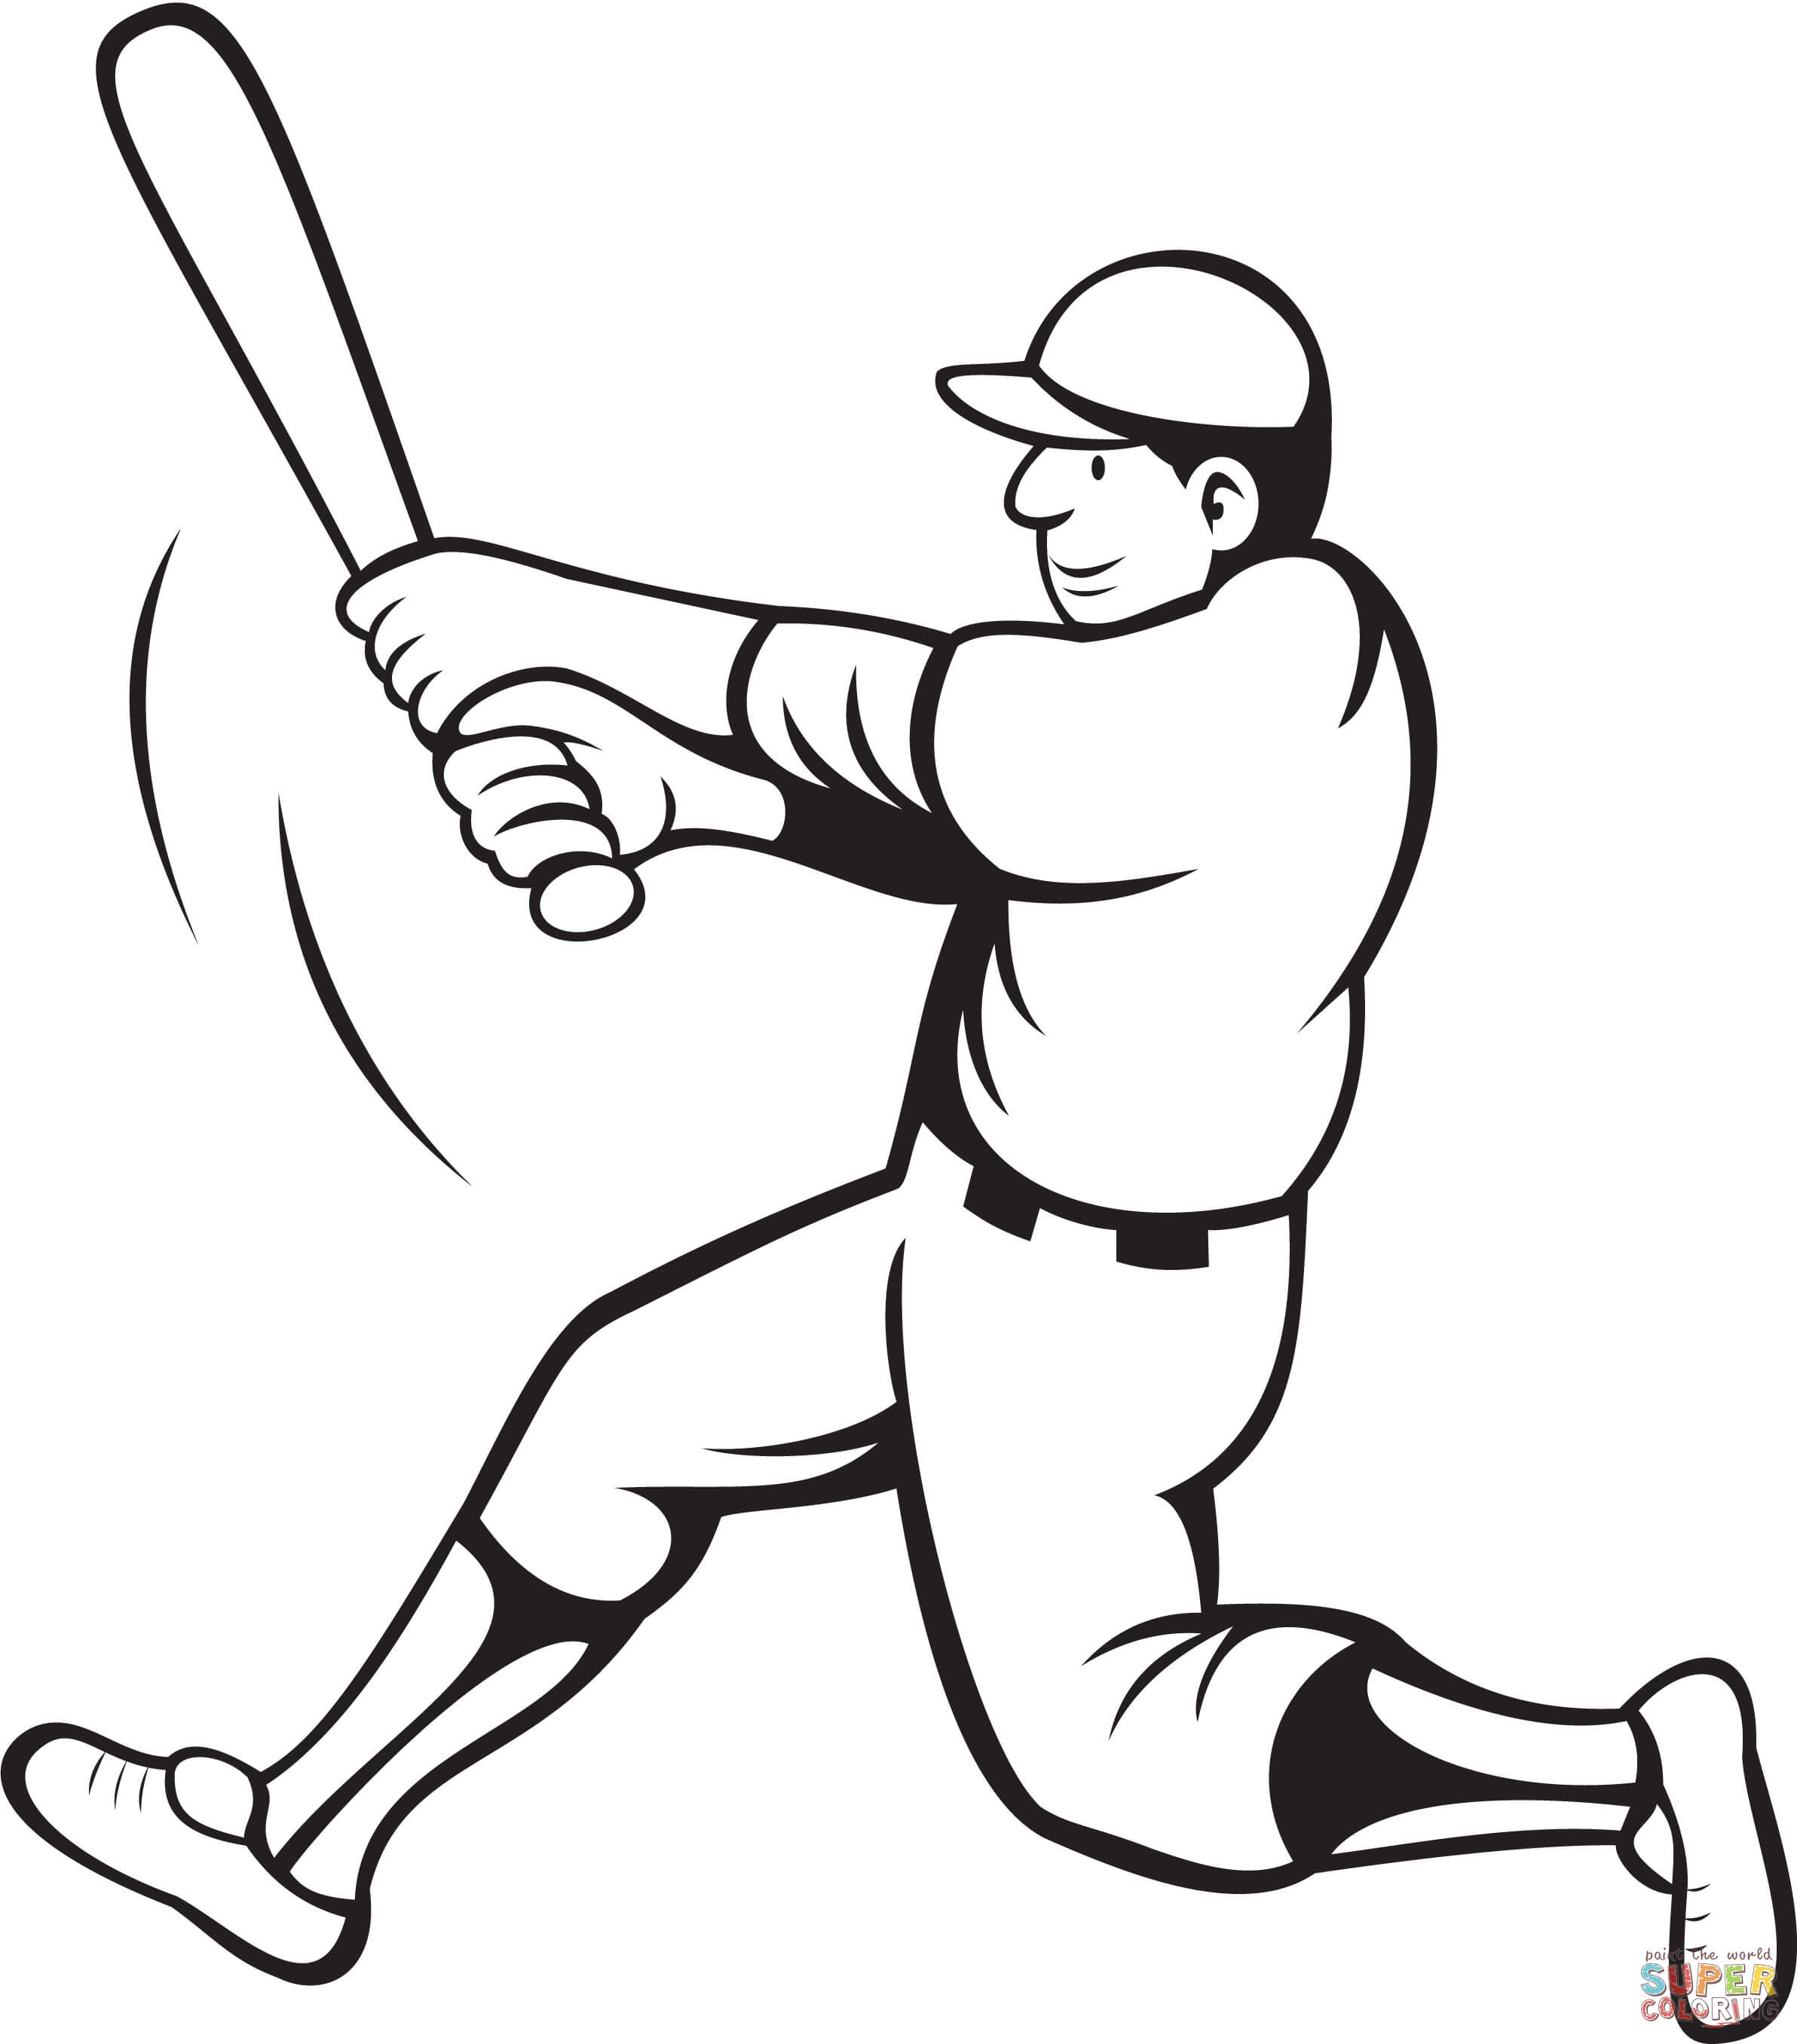 2384x2712 Chicago Cubs Coloring Pages Lovely Chicago Cubs Coloring Pages